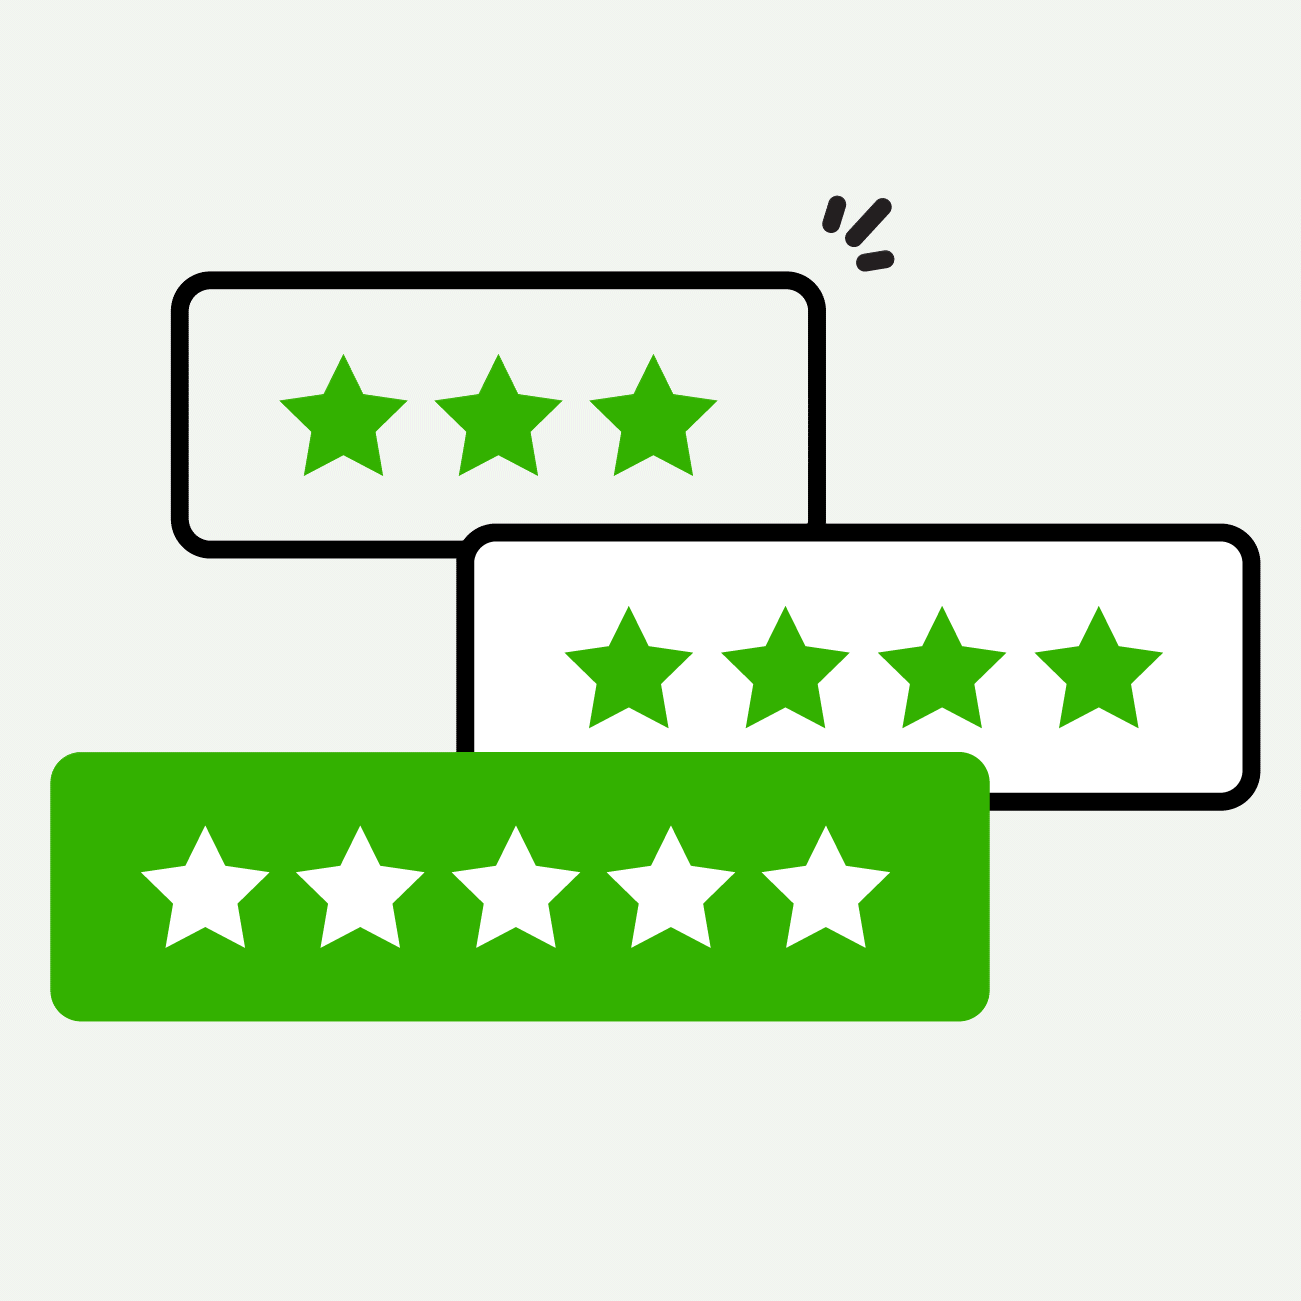 review stars icon